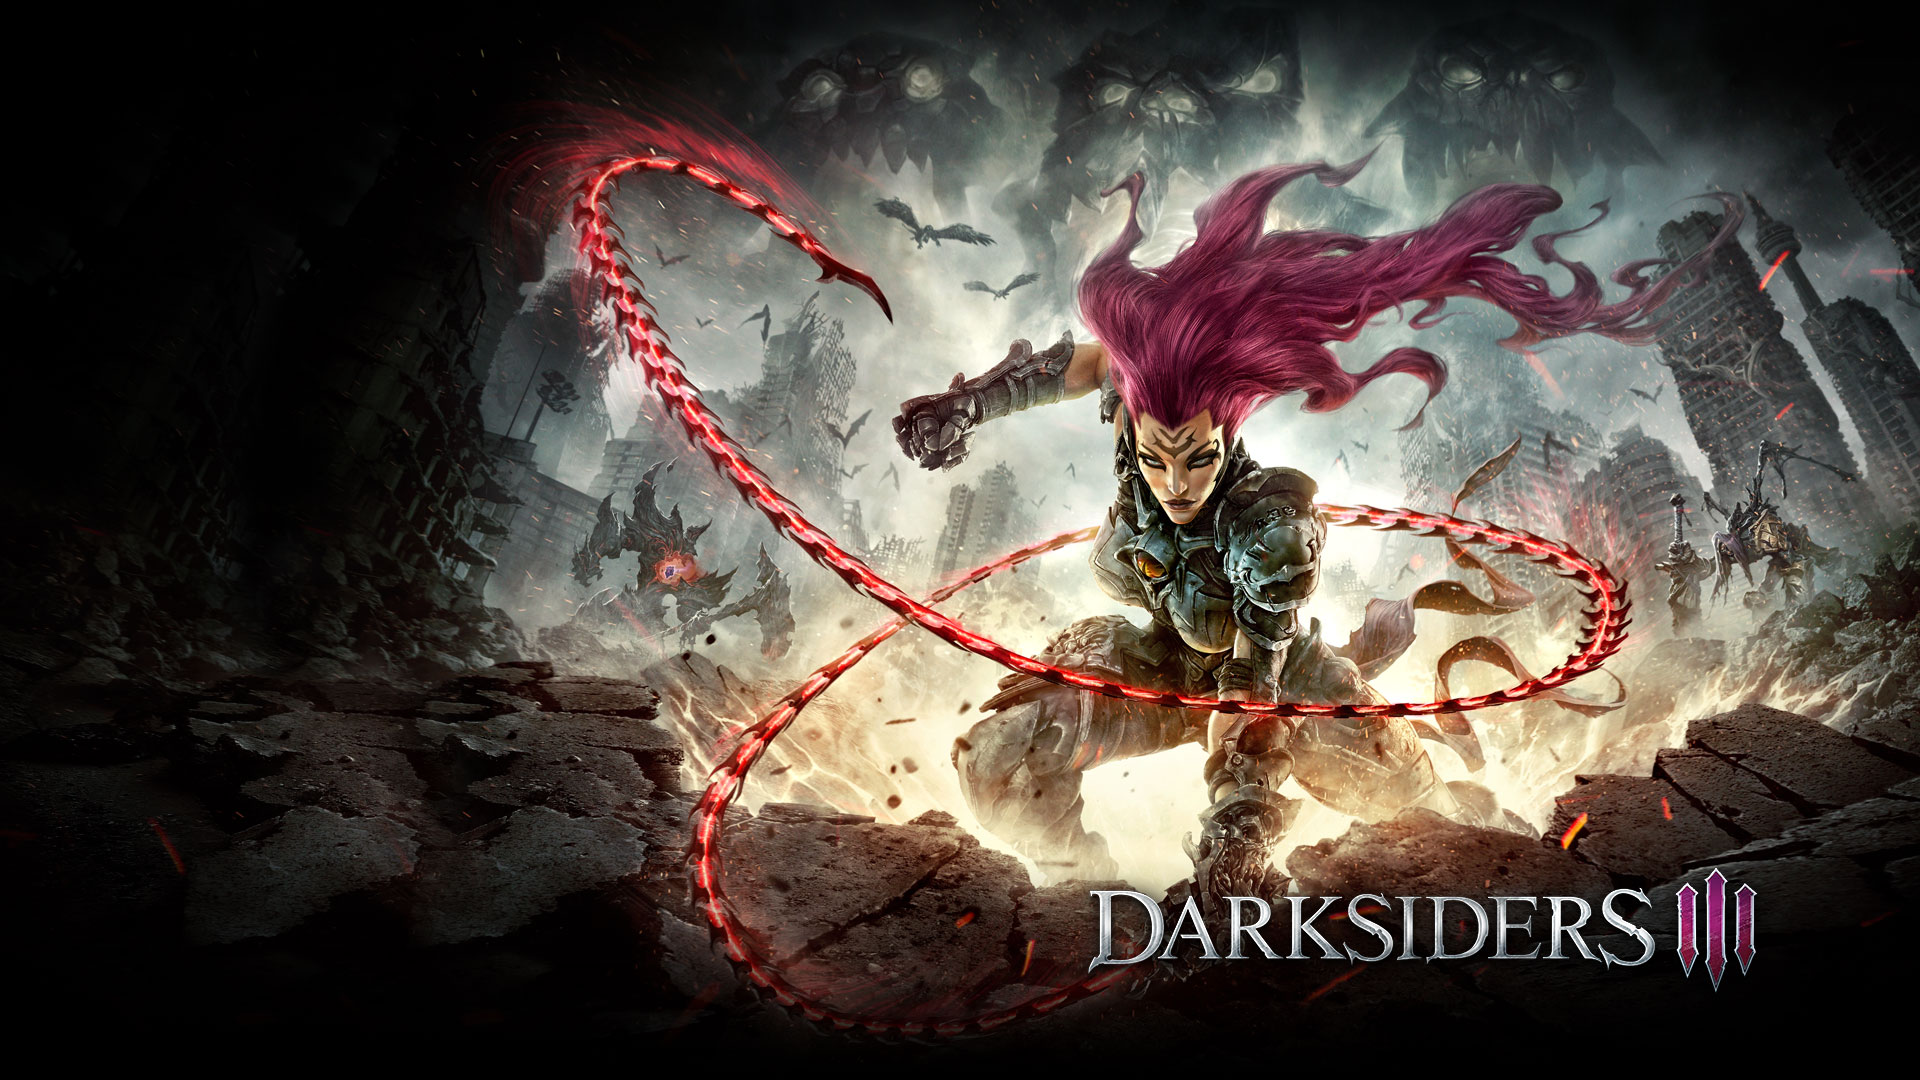 Darksiders 3, Fury unleashing her whip in a demolished city scape.